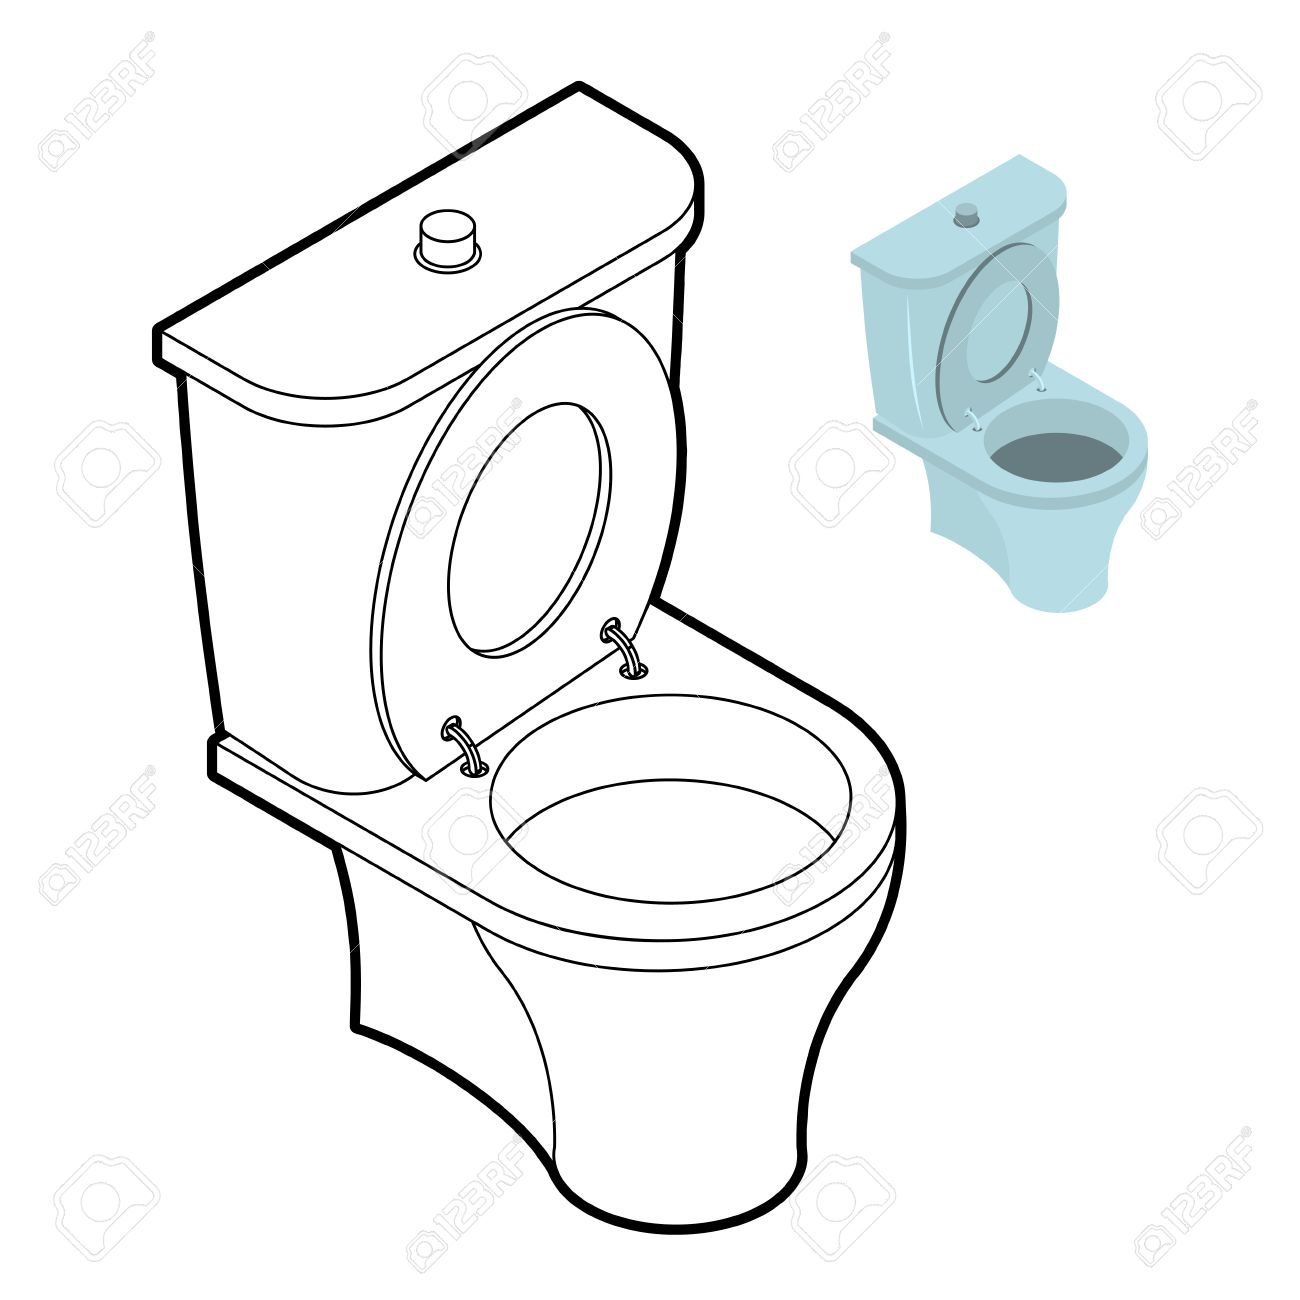 Bathroom and toilet accessories - Toilet Wc Coloring Book Bathroom Accessories In Linear Style Stock Vector 54868979